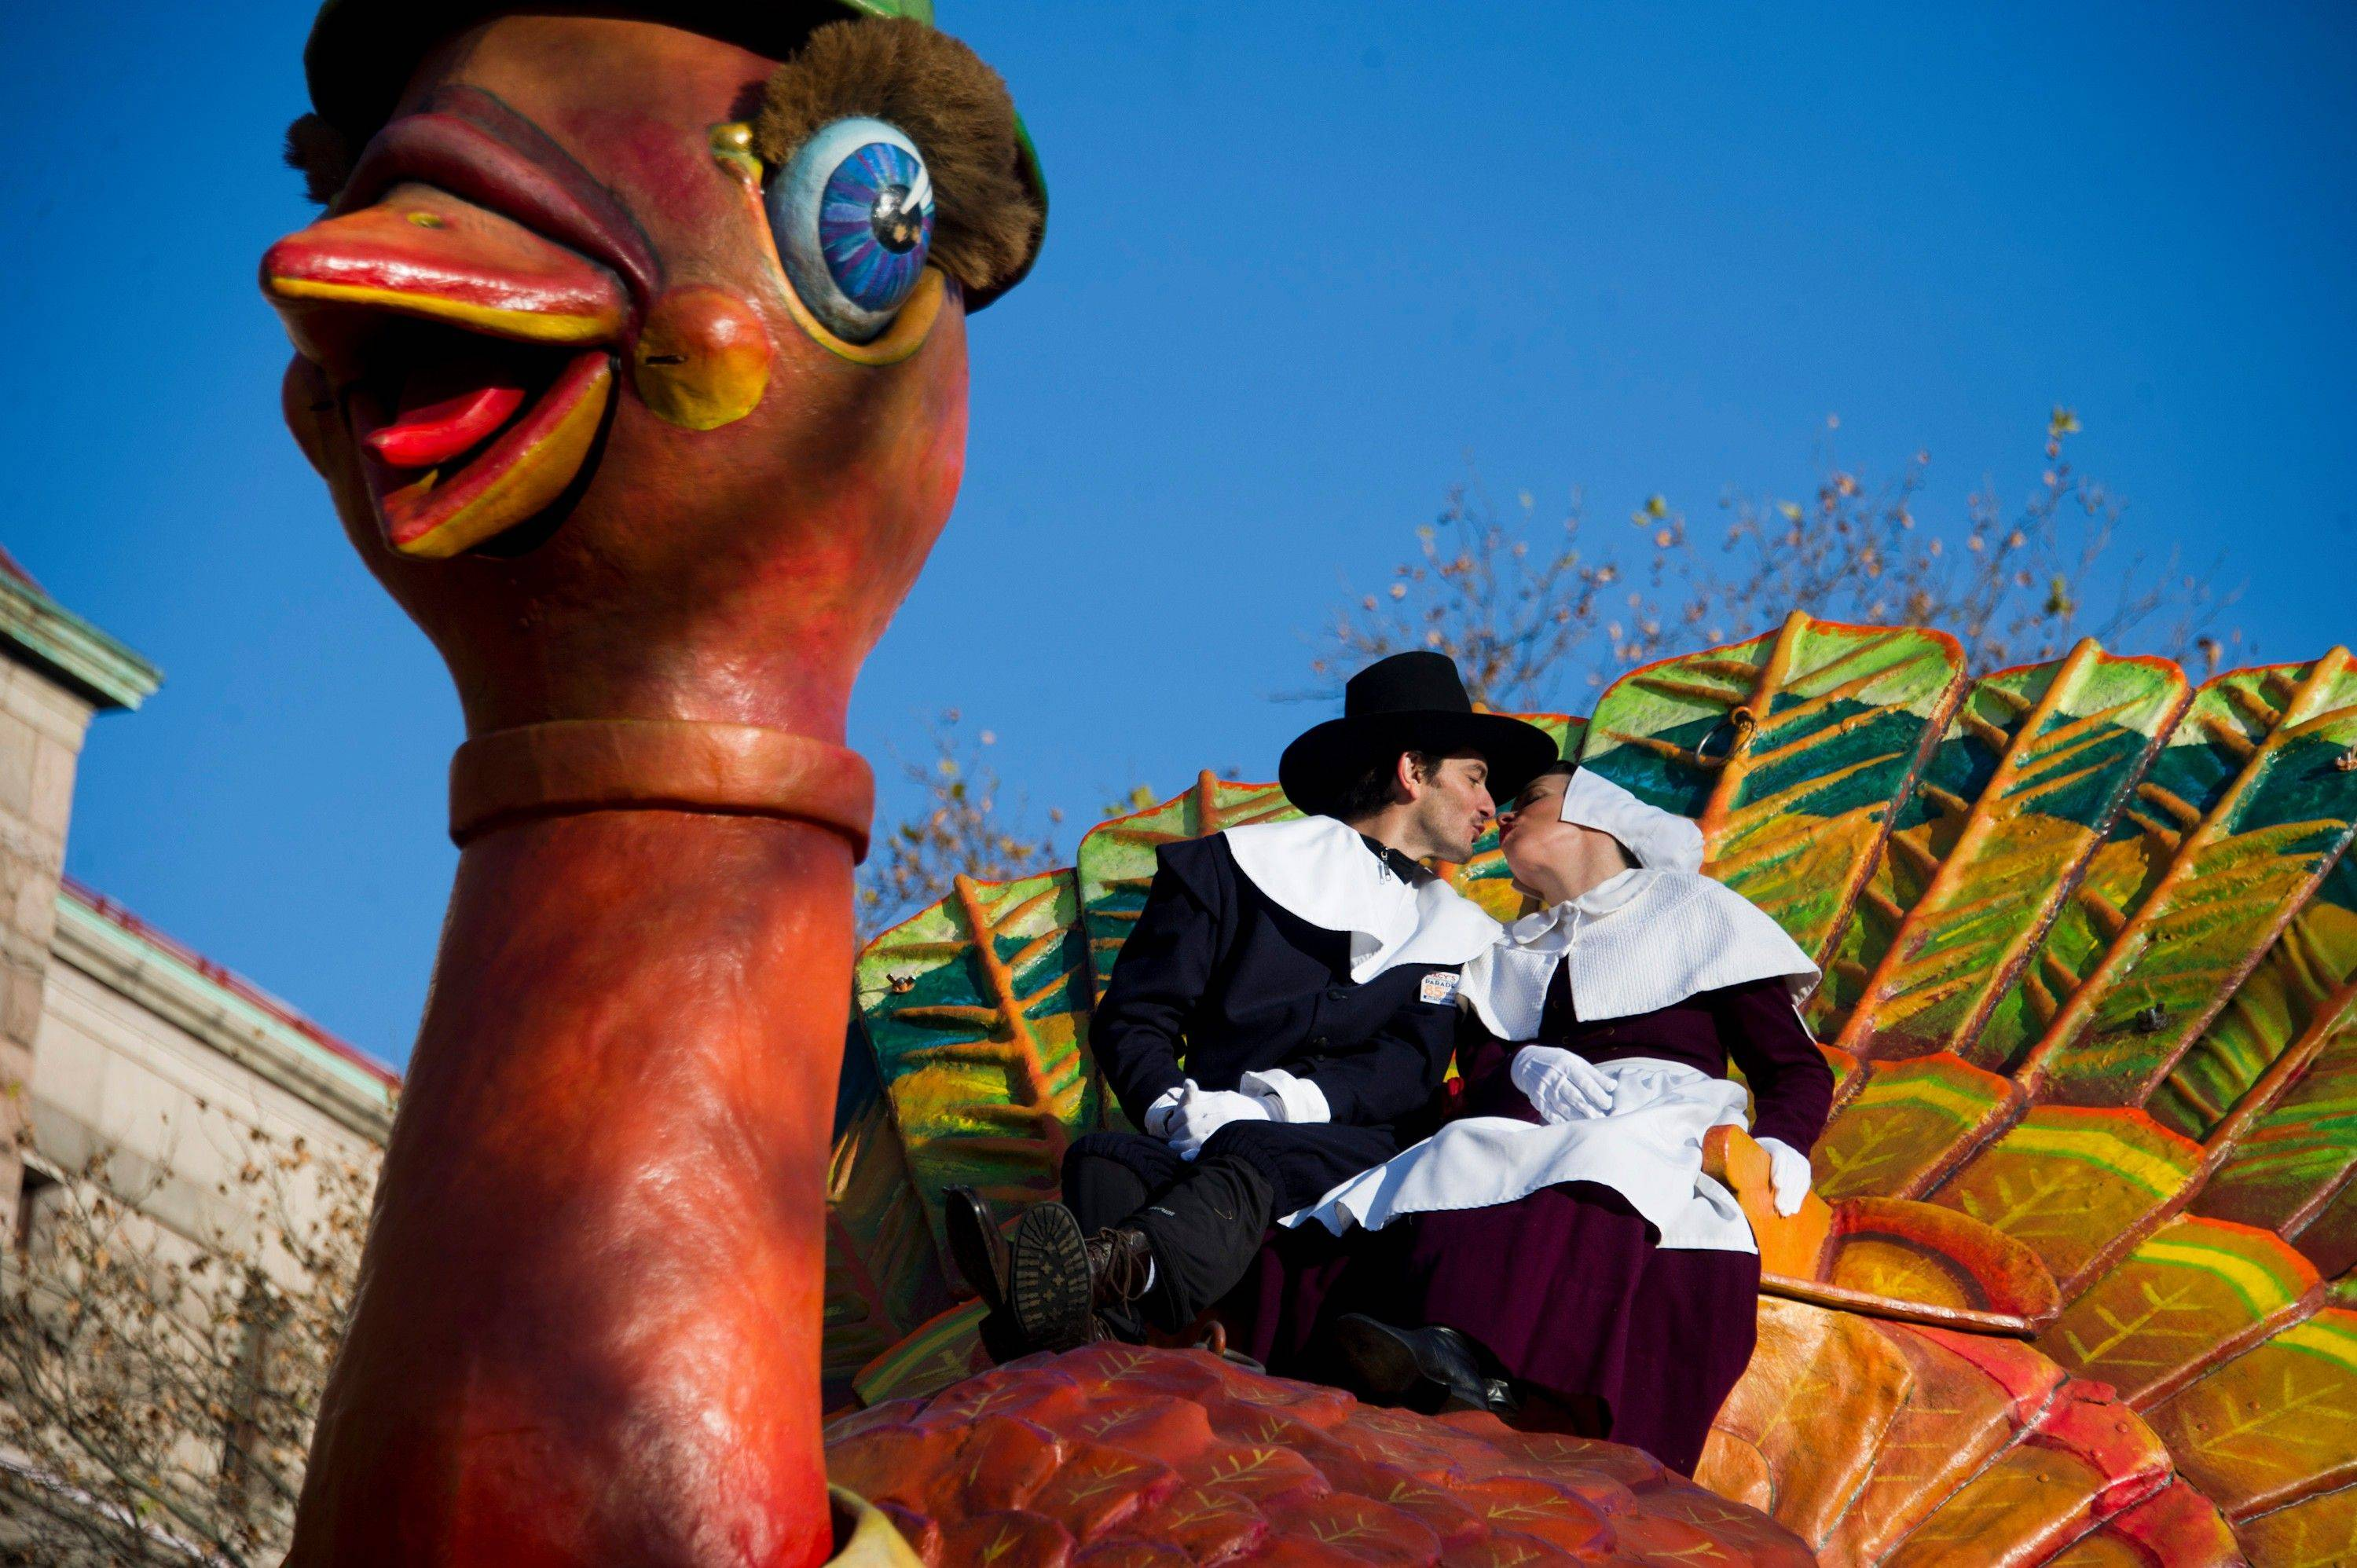 Gabriele Corcos and Debi Mazar ride a float in the Macy's Thanksgiving Day Parade in New York, Thursday, Nov. 24, 2011.